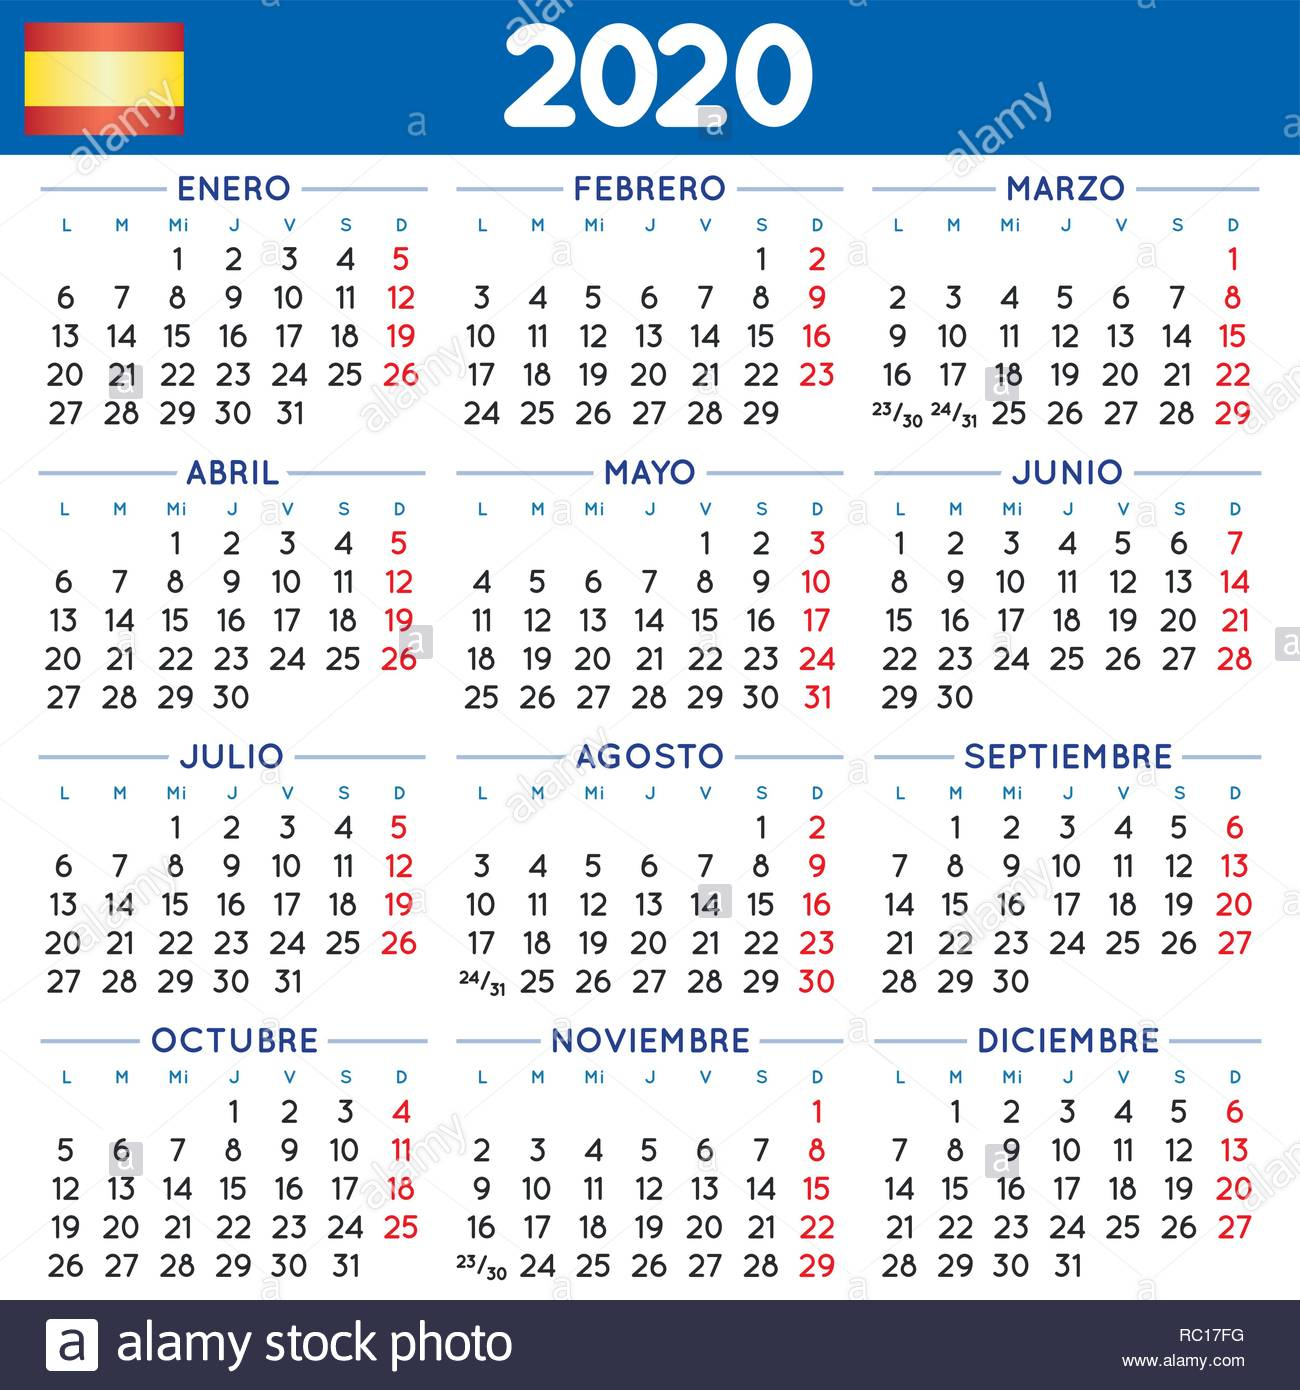 2020 Elegante Calendario Cuadrado En Español. Año 2020 with regard to Calendario 2020 Con Semanas